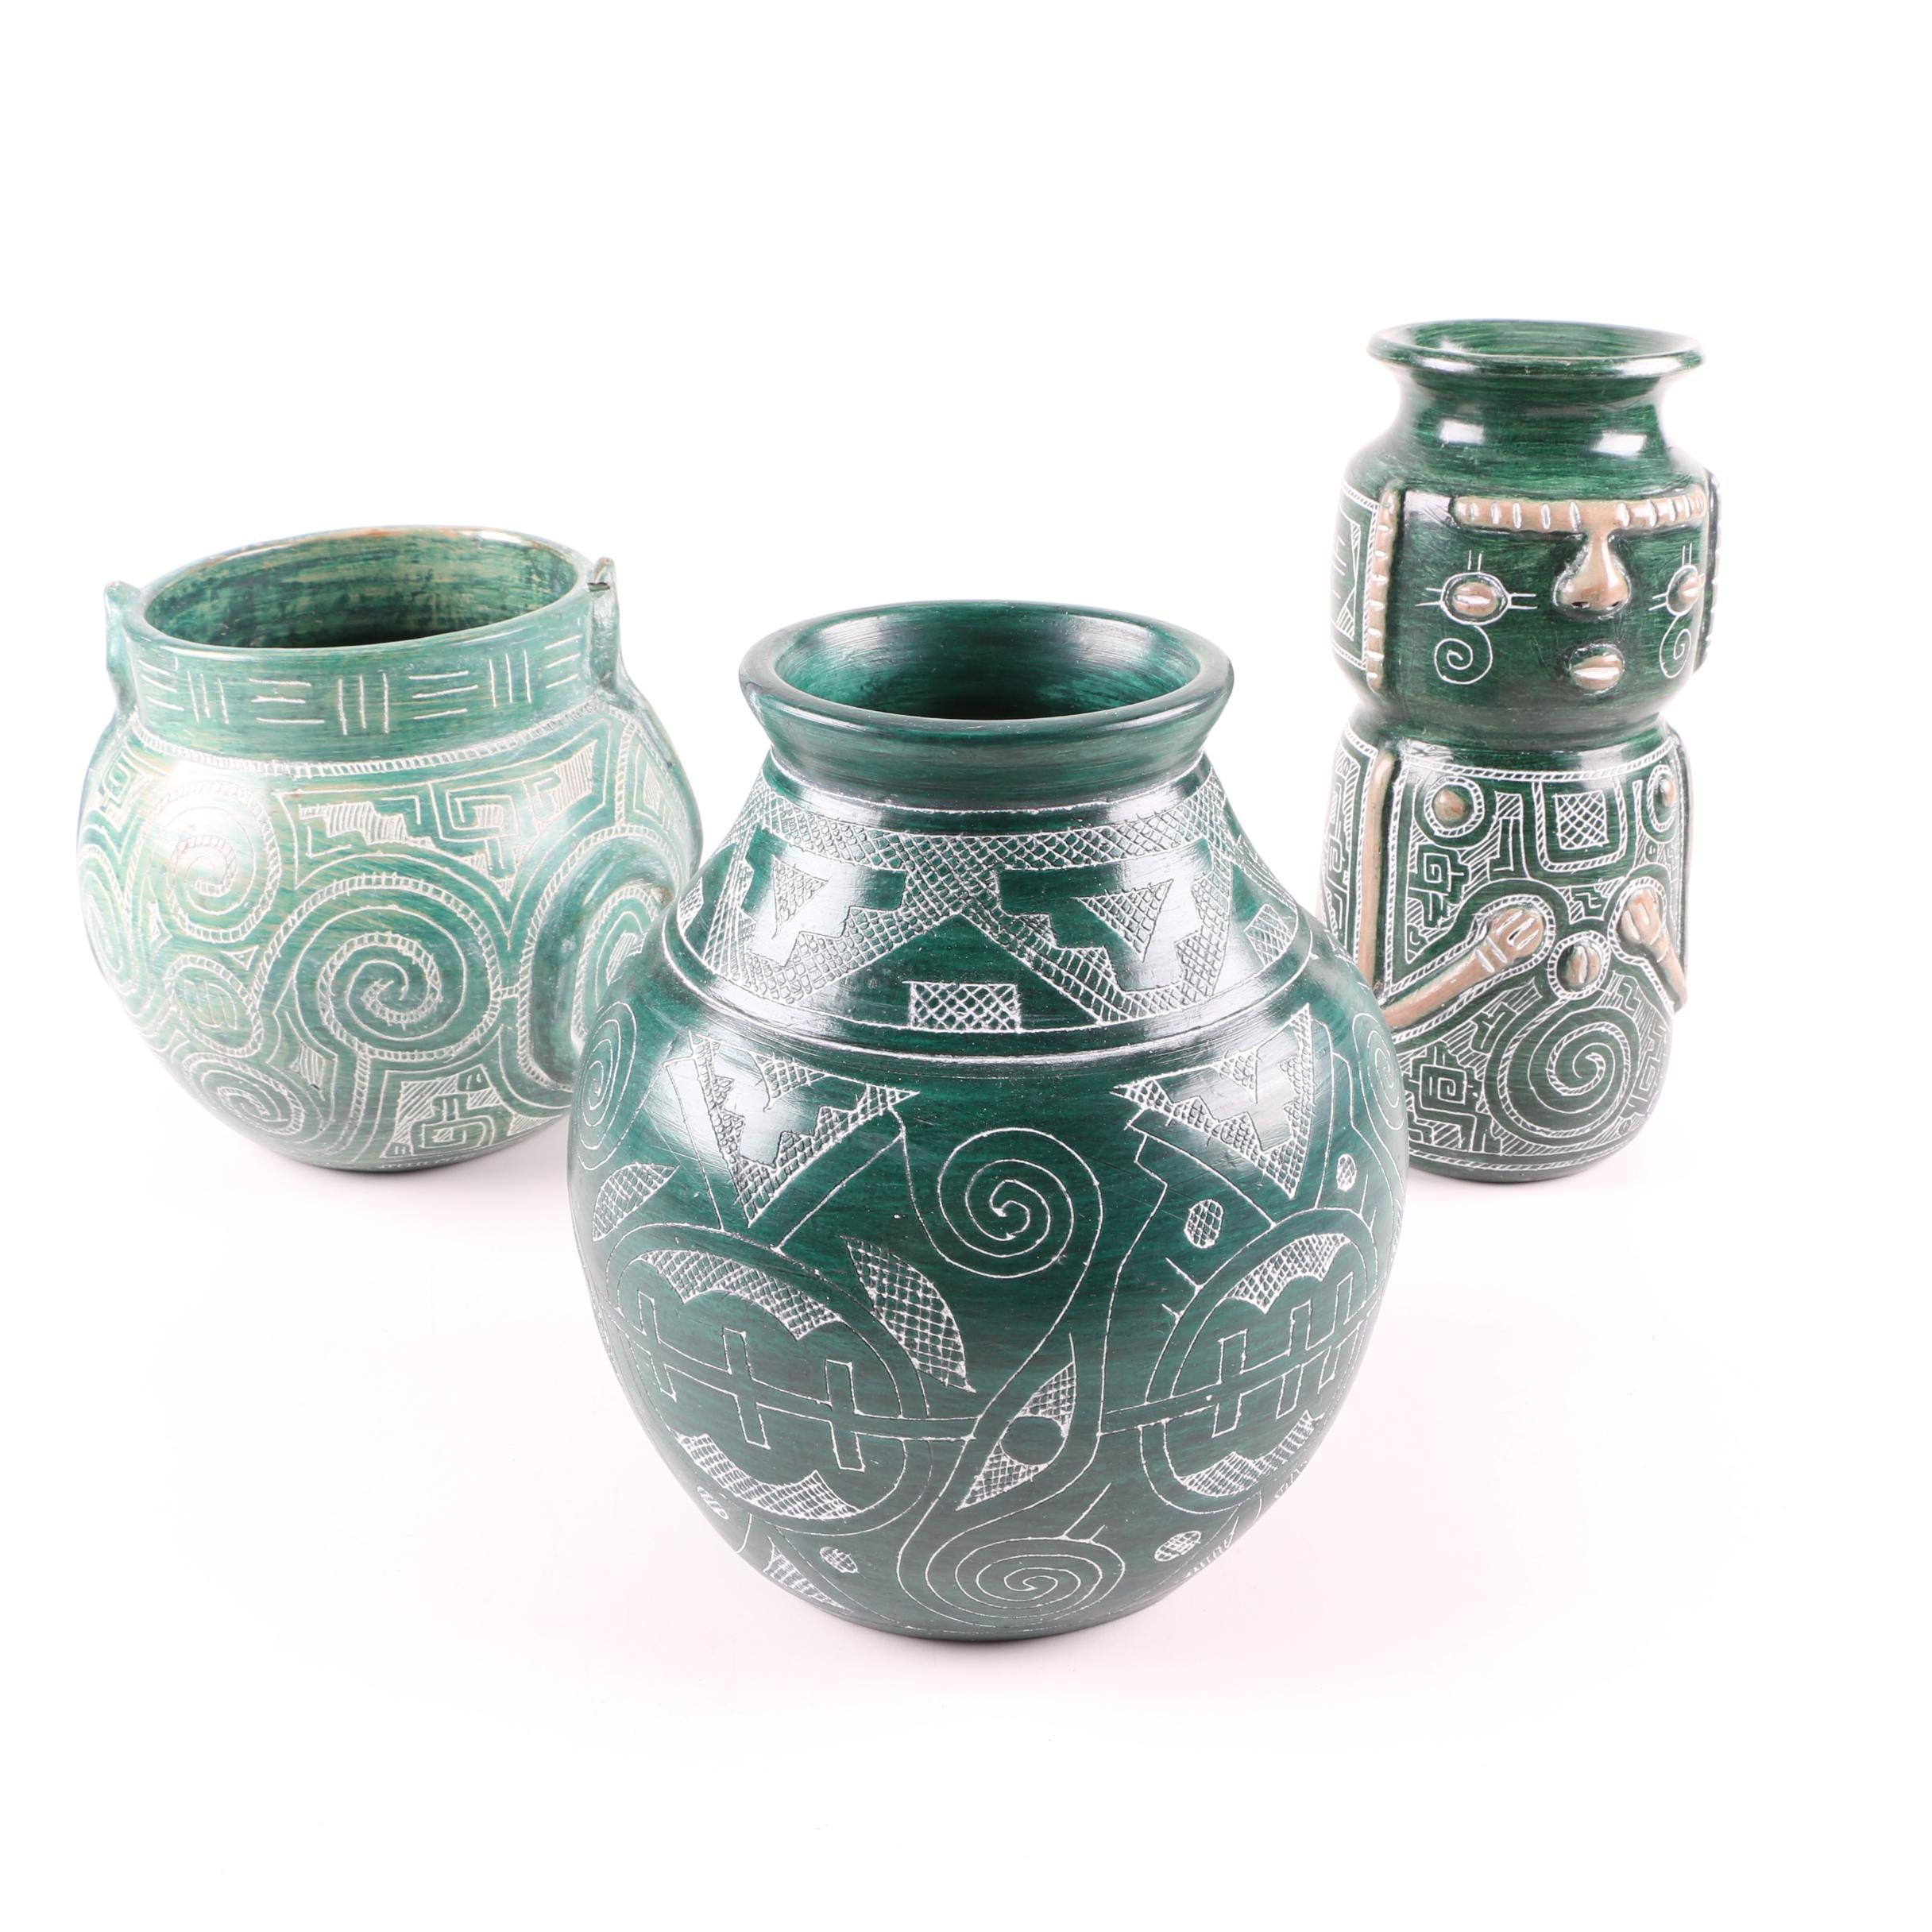 Vintage Brazilian Green and White Art Pottery Vessels